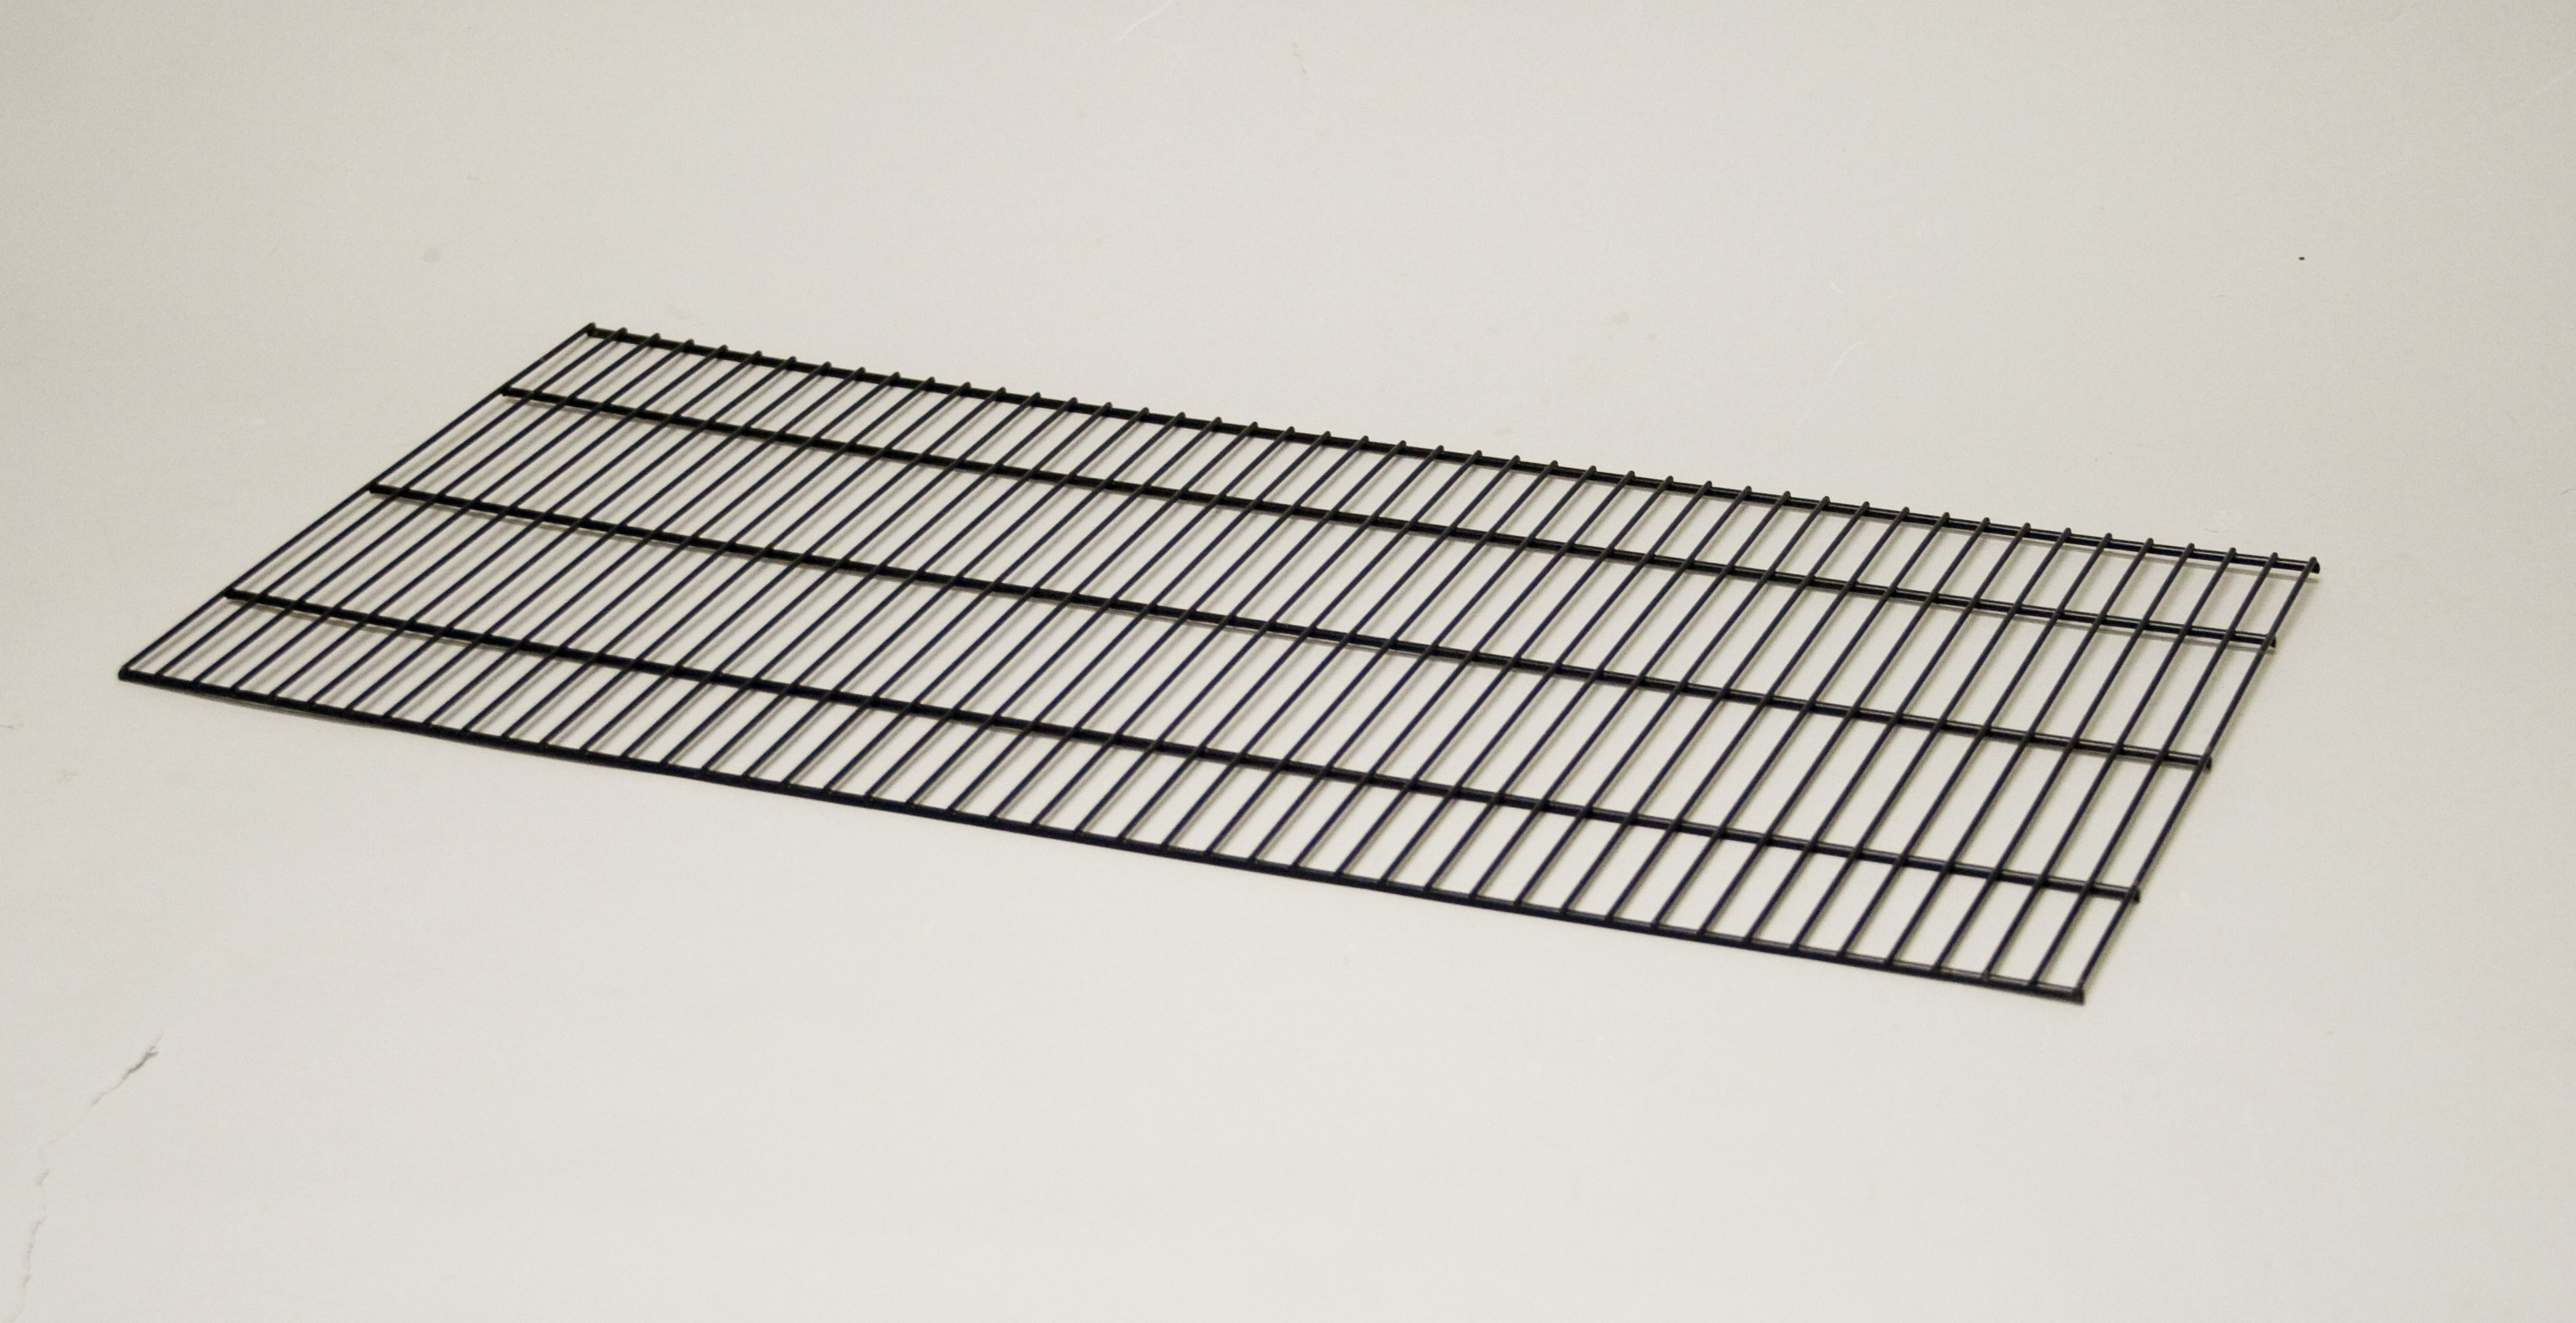 Replacement Floor Grid for Premium Plus Bunny Cottage (WA 01535)